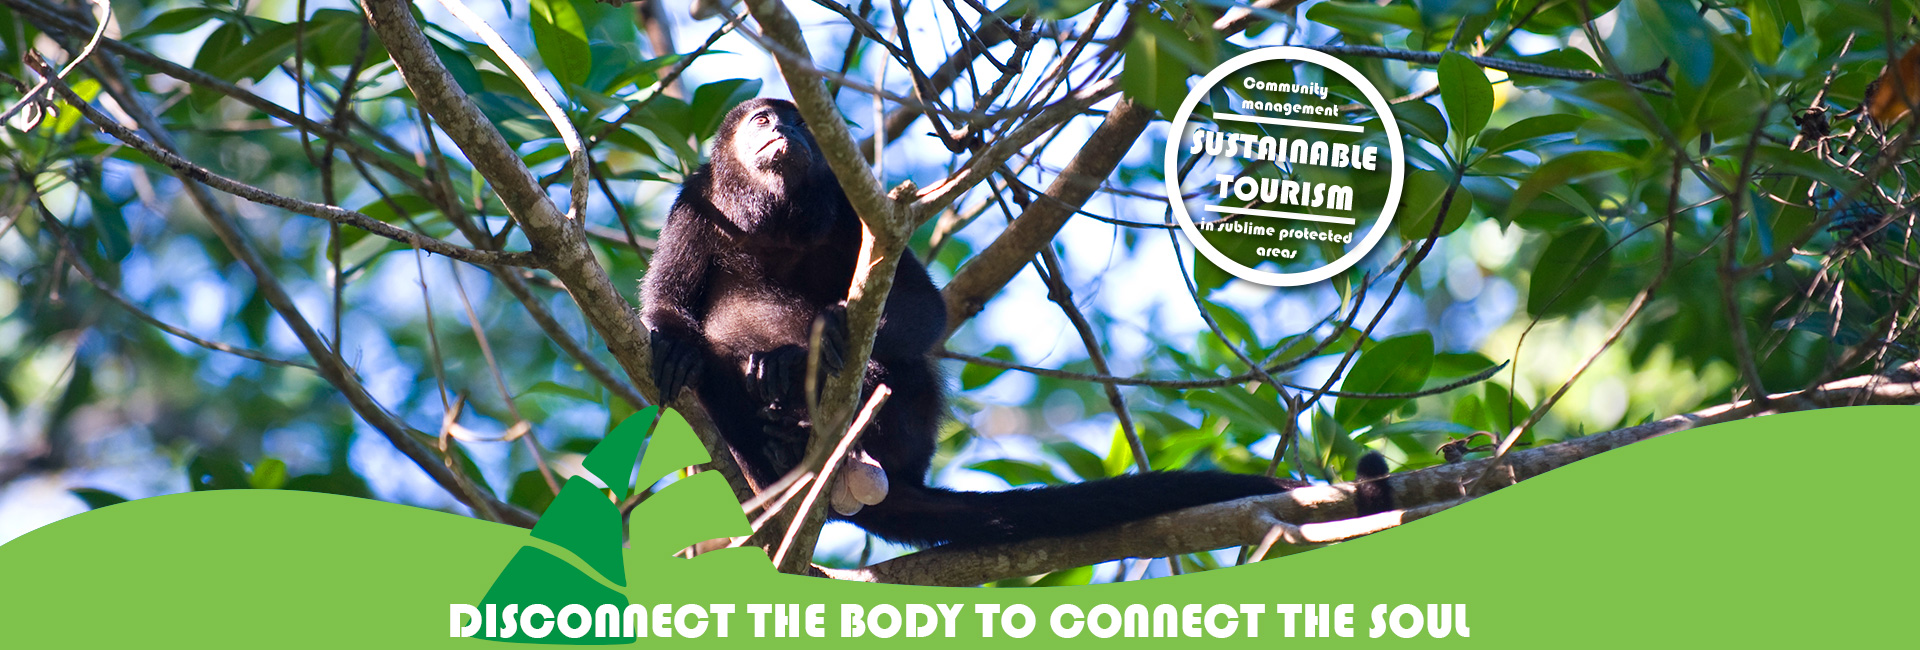 Disconnect the body in Caribe Maya